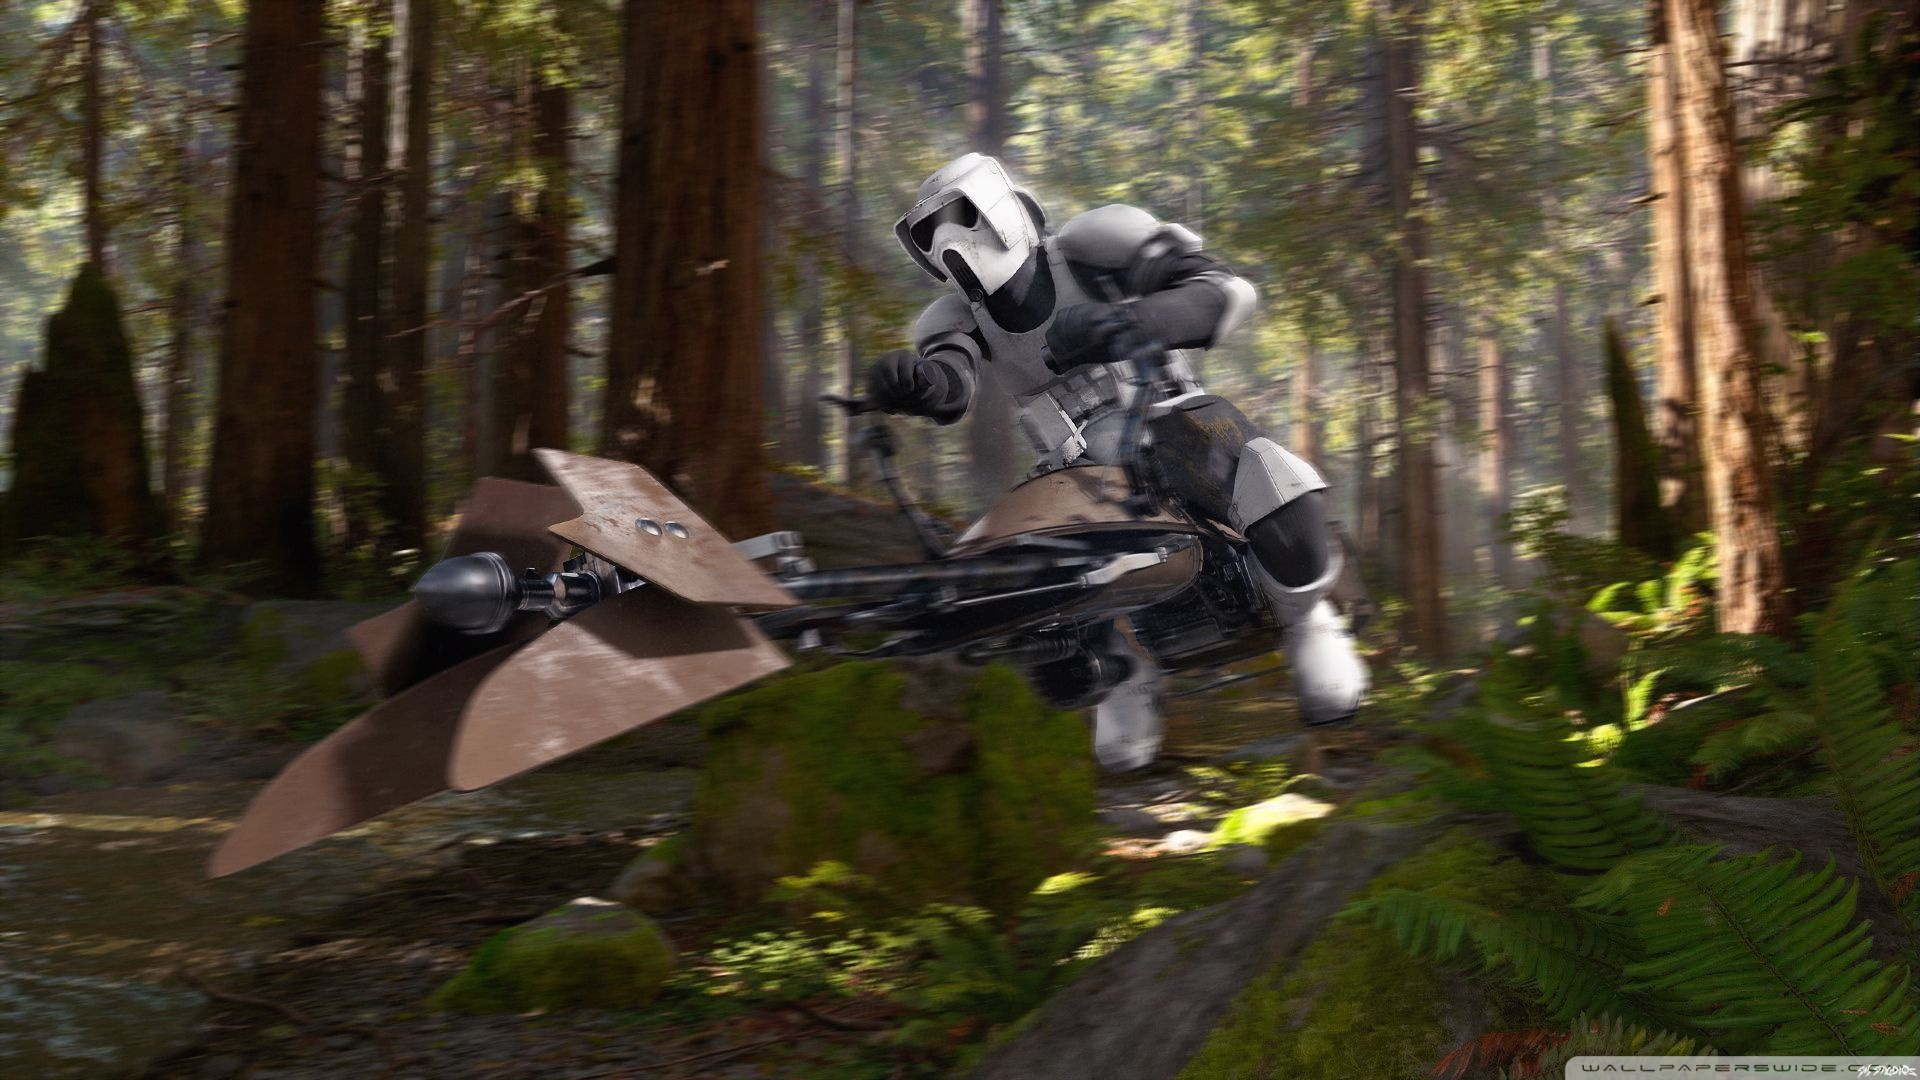 Endor Wallpaper Posted By Ethan Sellers